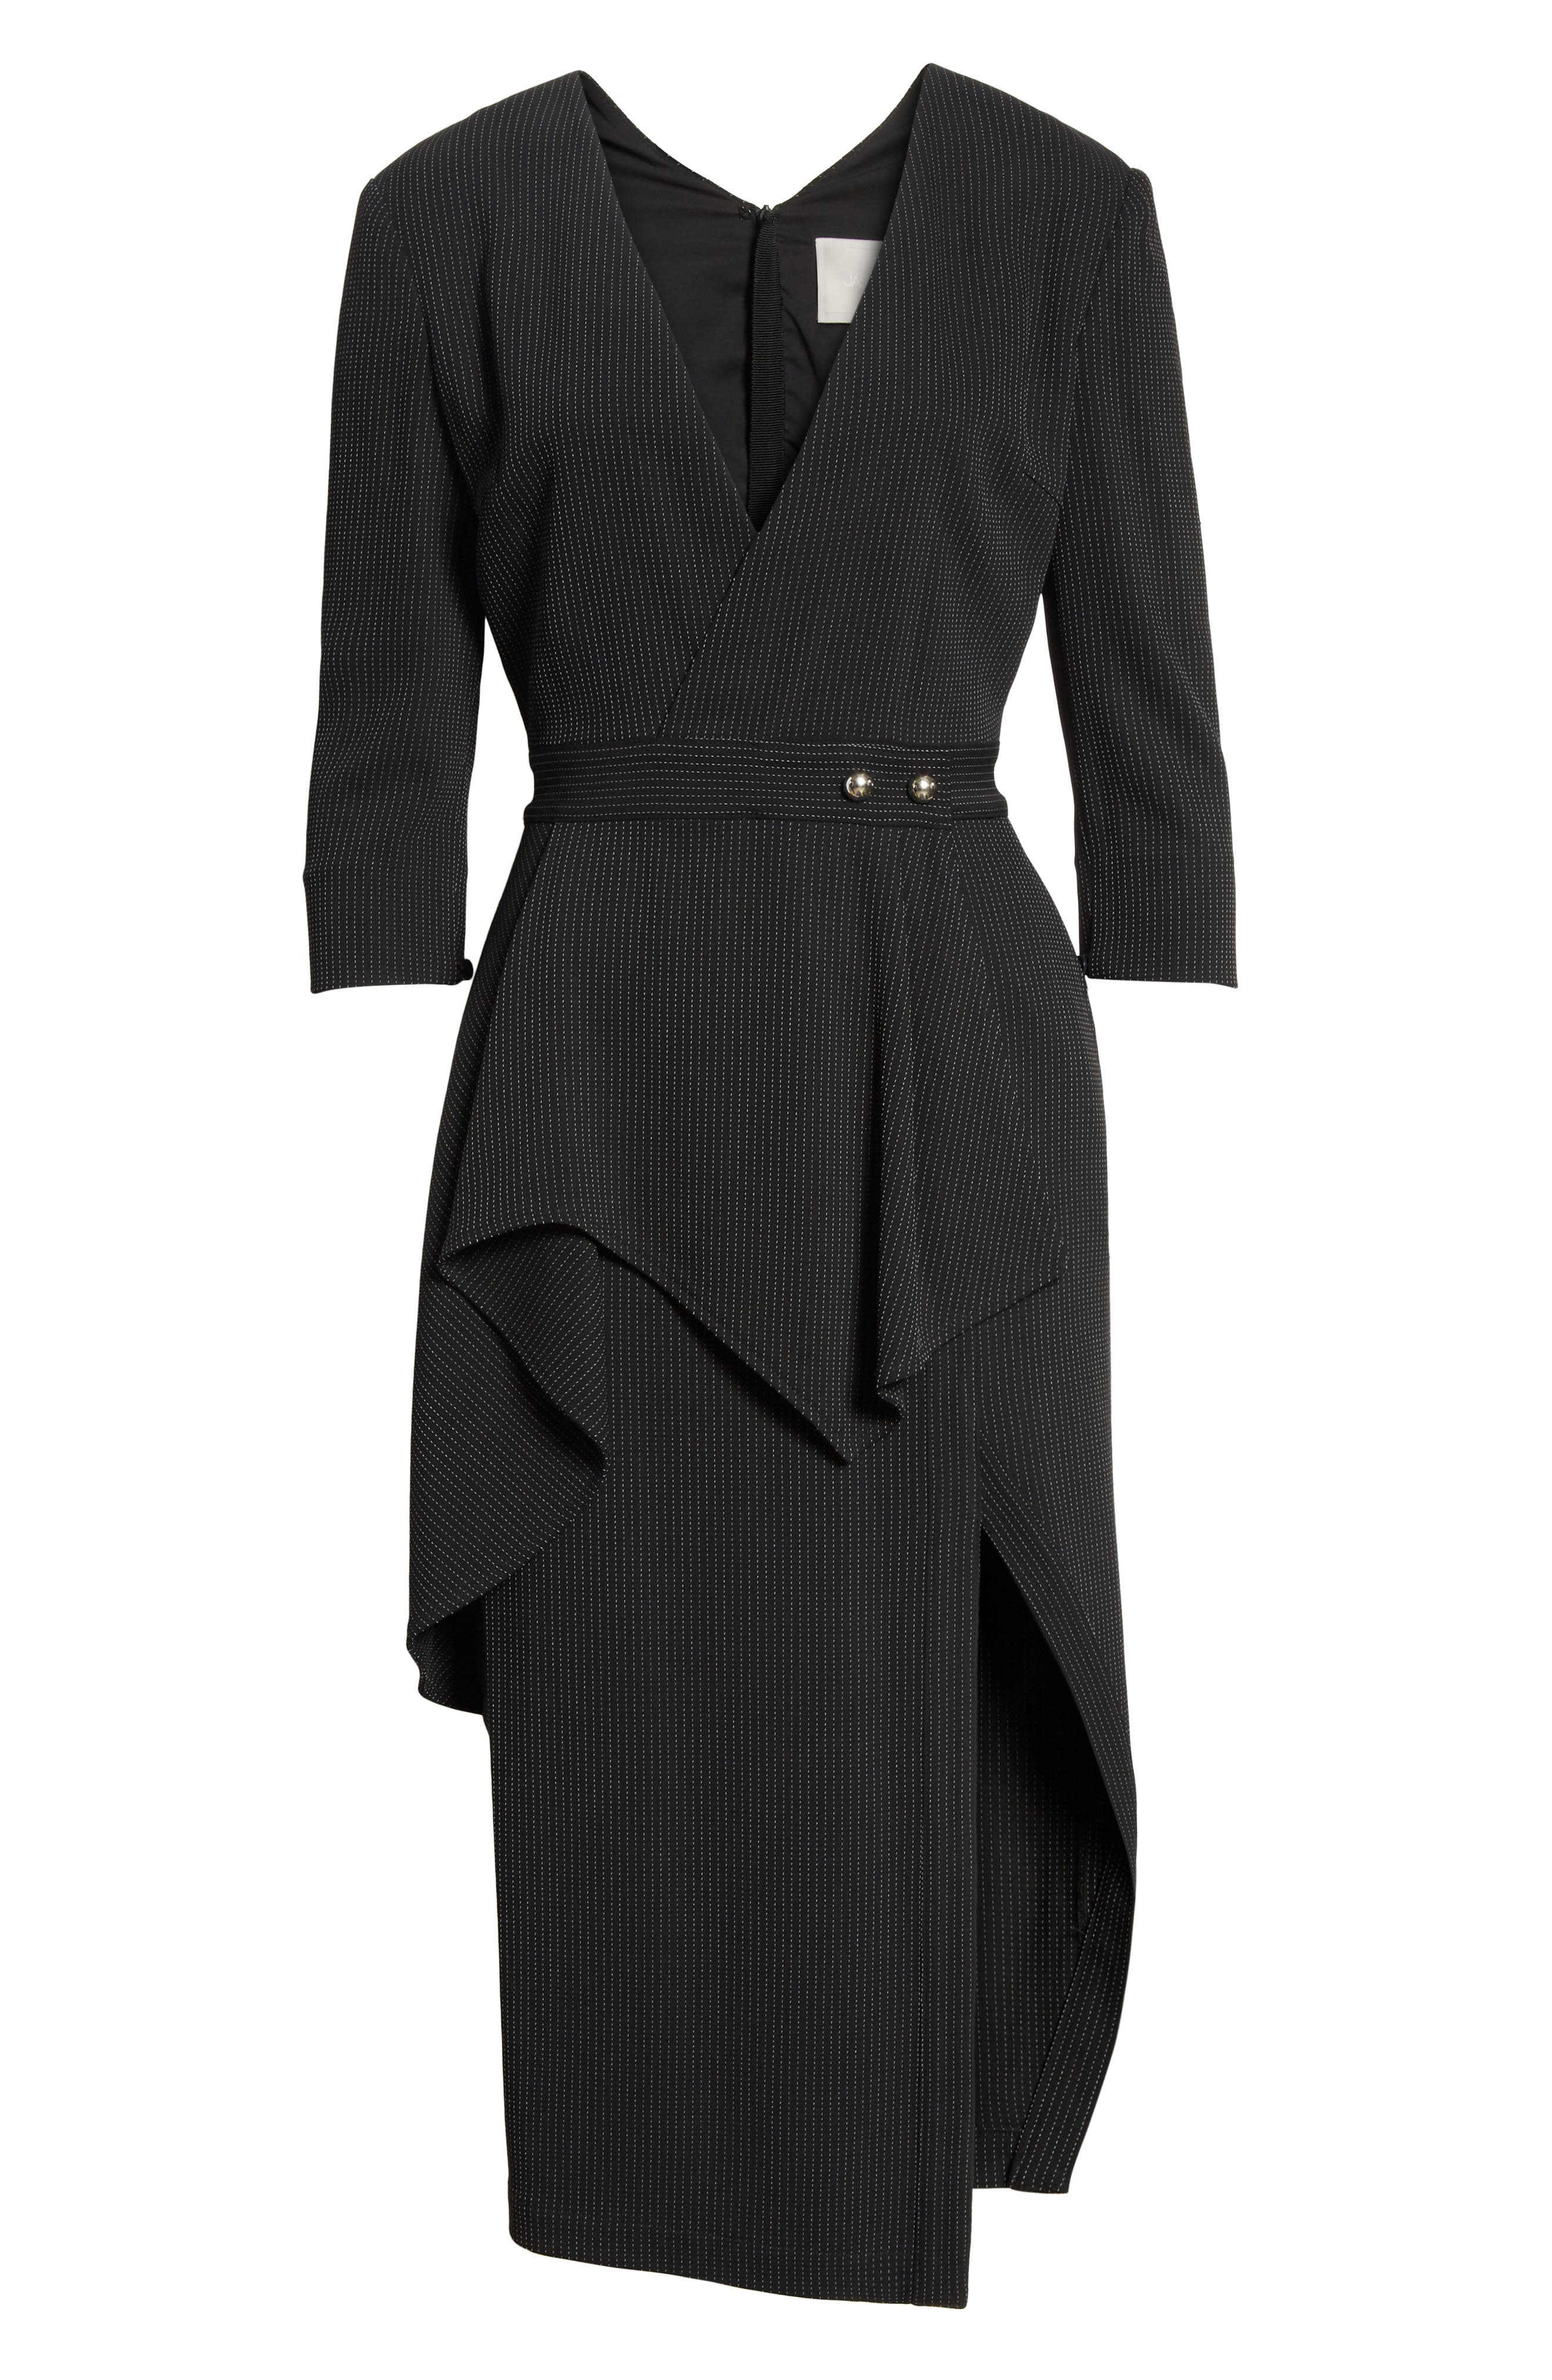 Jason Wu Pinstripe Jersey Sheath Dress,                             Alternate thumbnail 6, color,                             012